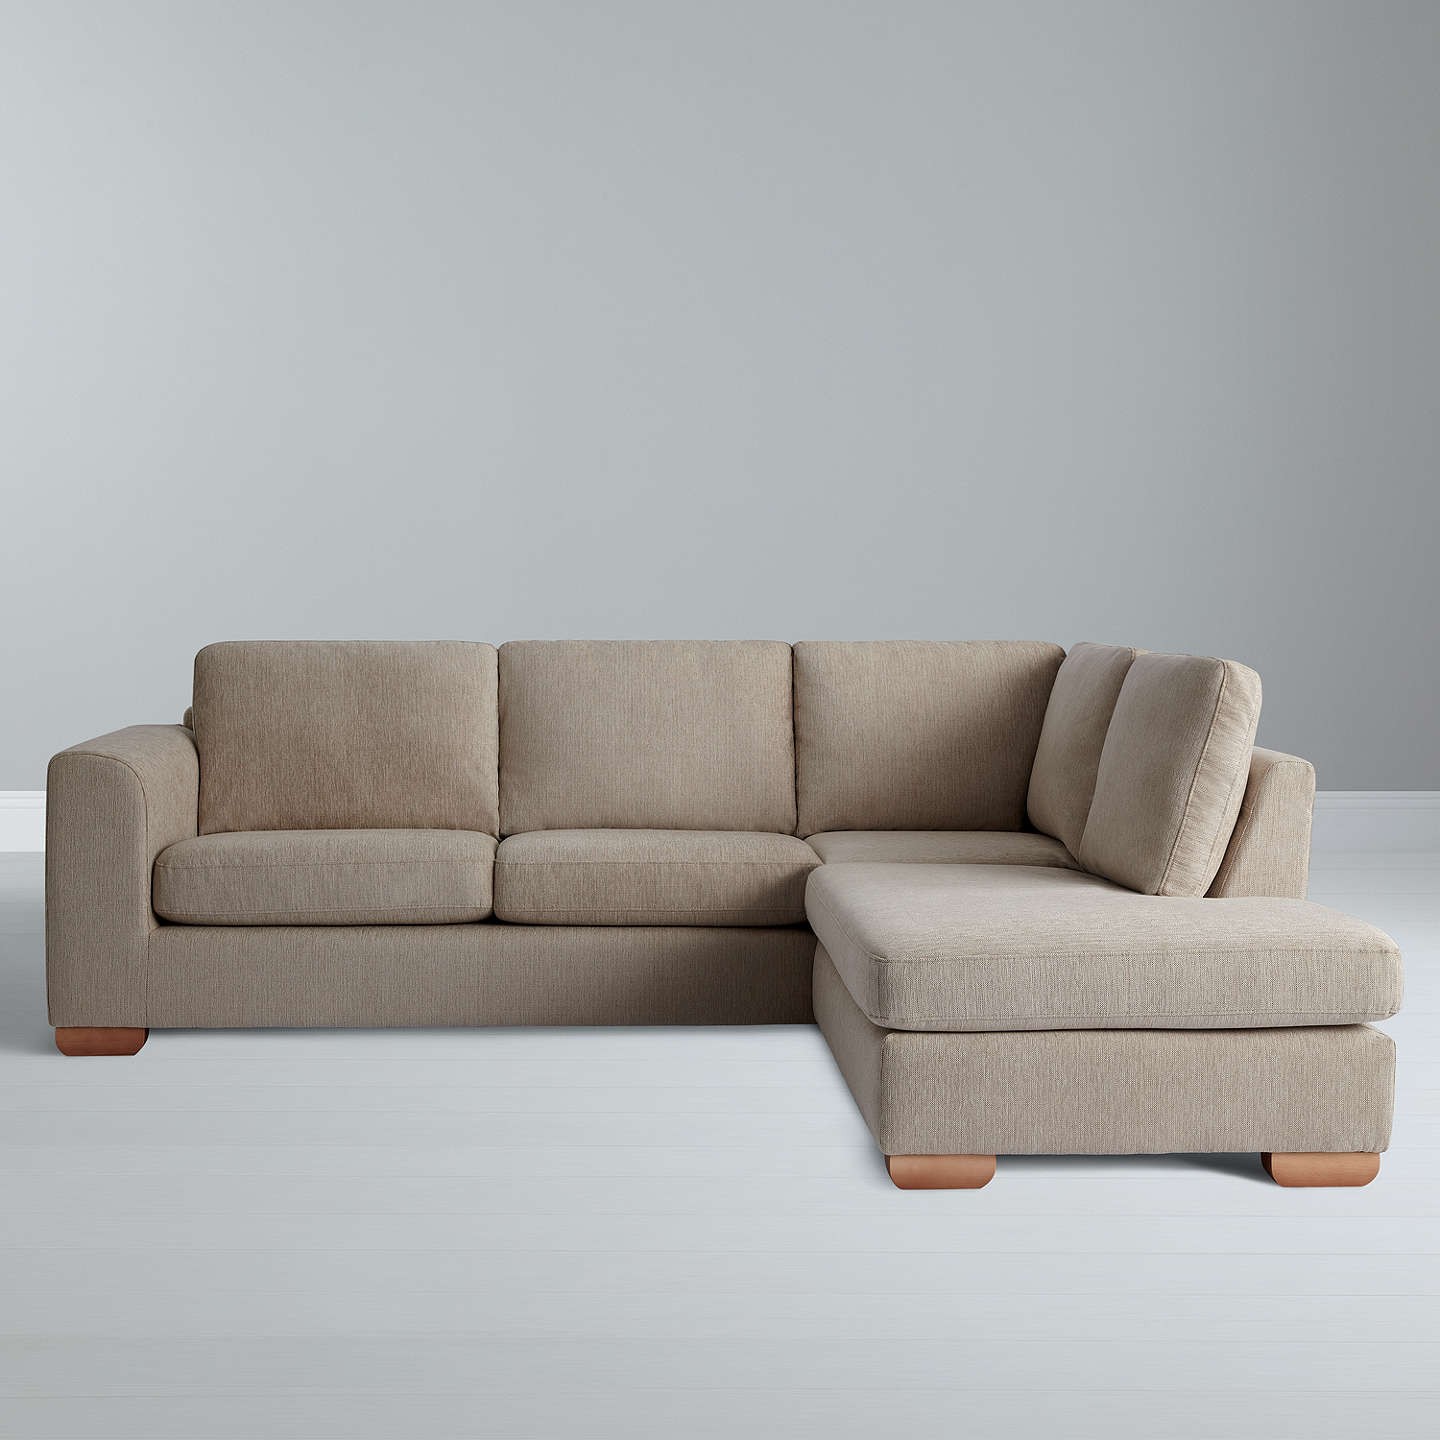 John Lewis Cooper Corner Sofa: John Lewis Felix RHF Corner Chaise End Sofa With Light